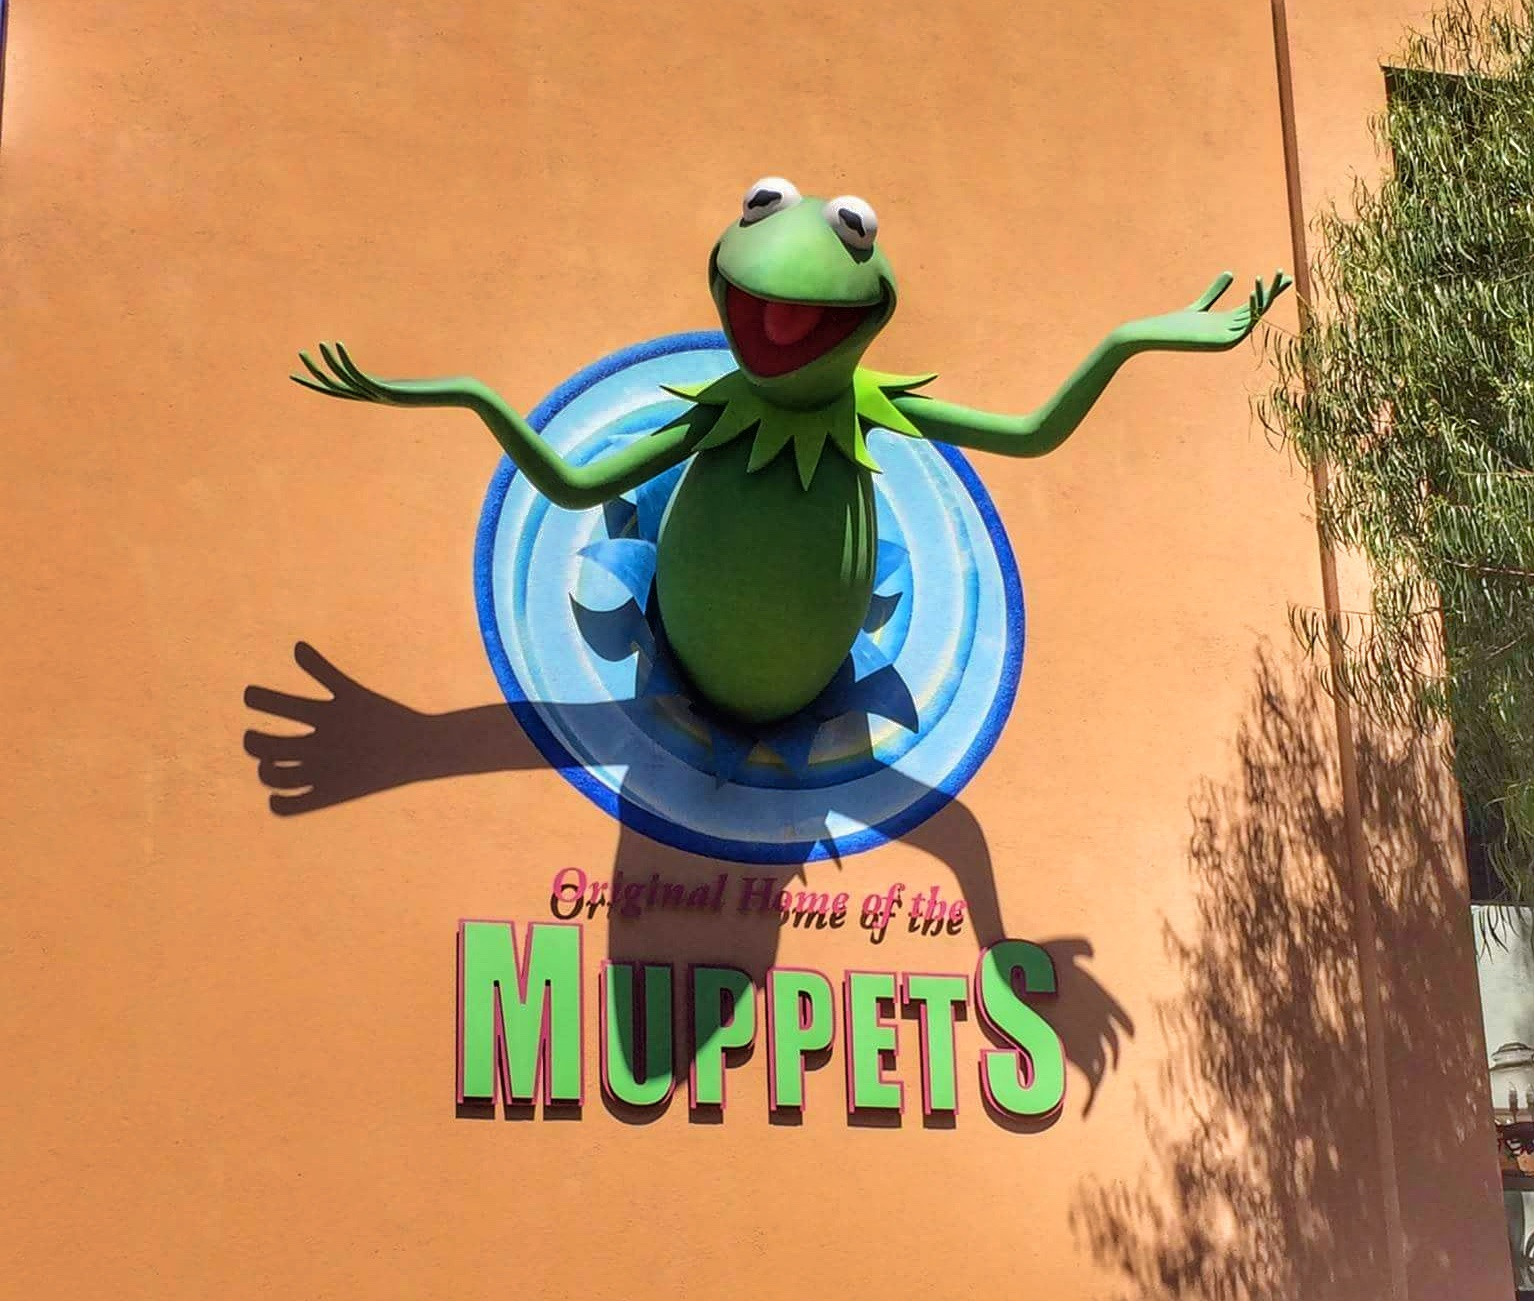 Jim Henson Studios, Kermit the frog, Muppets, Splash and Bubbles